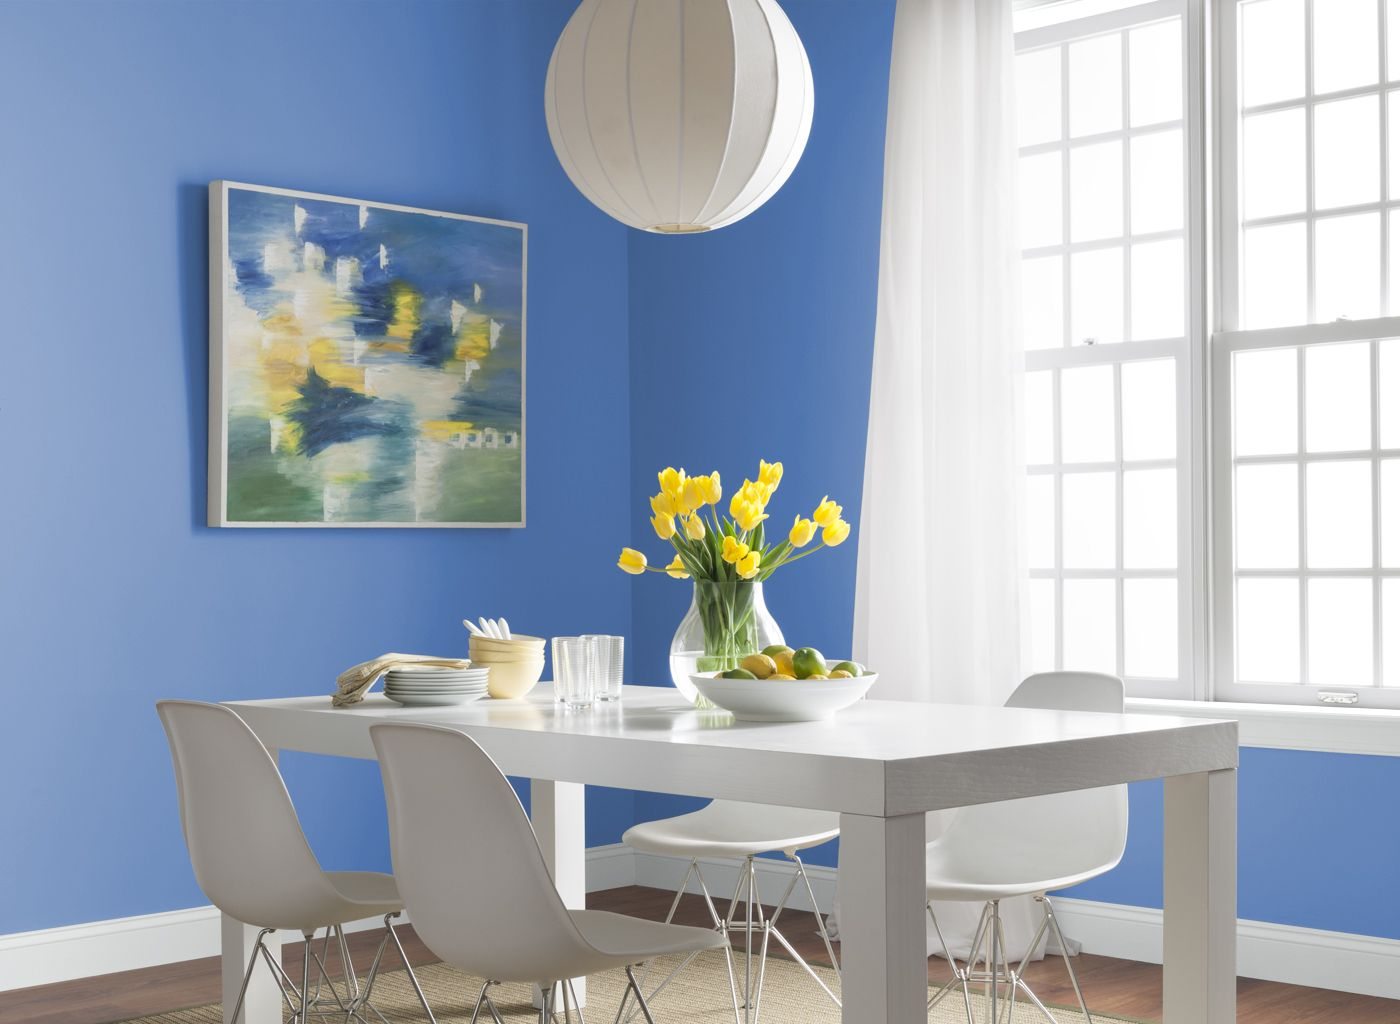 Blue Paint For Dining Room: Pin By Ayu Sari On Ruchi Designs